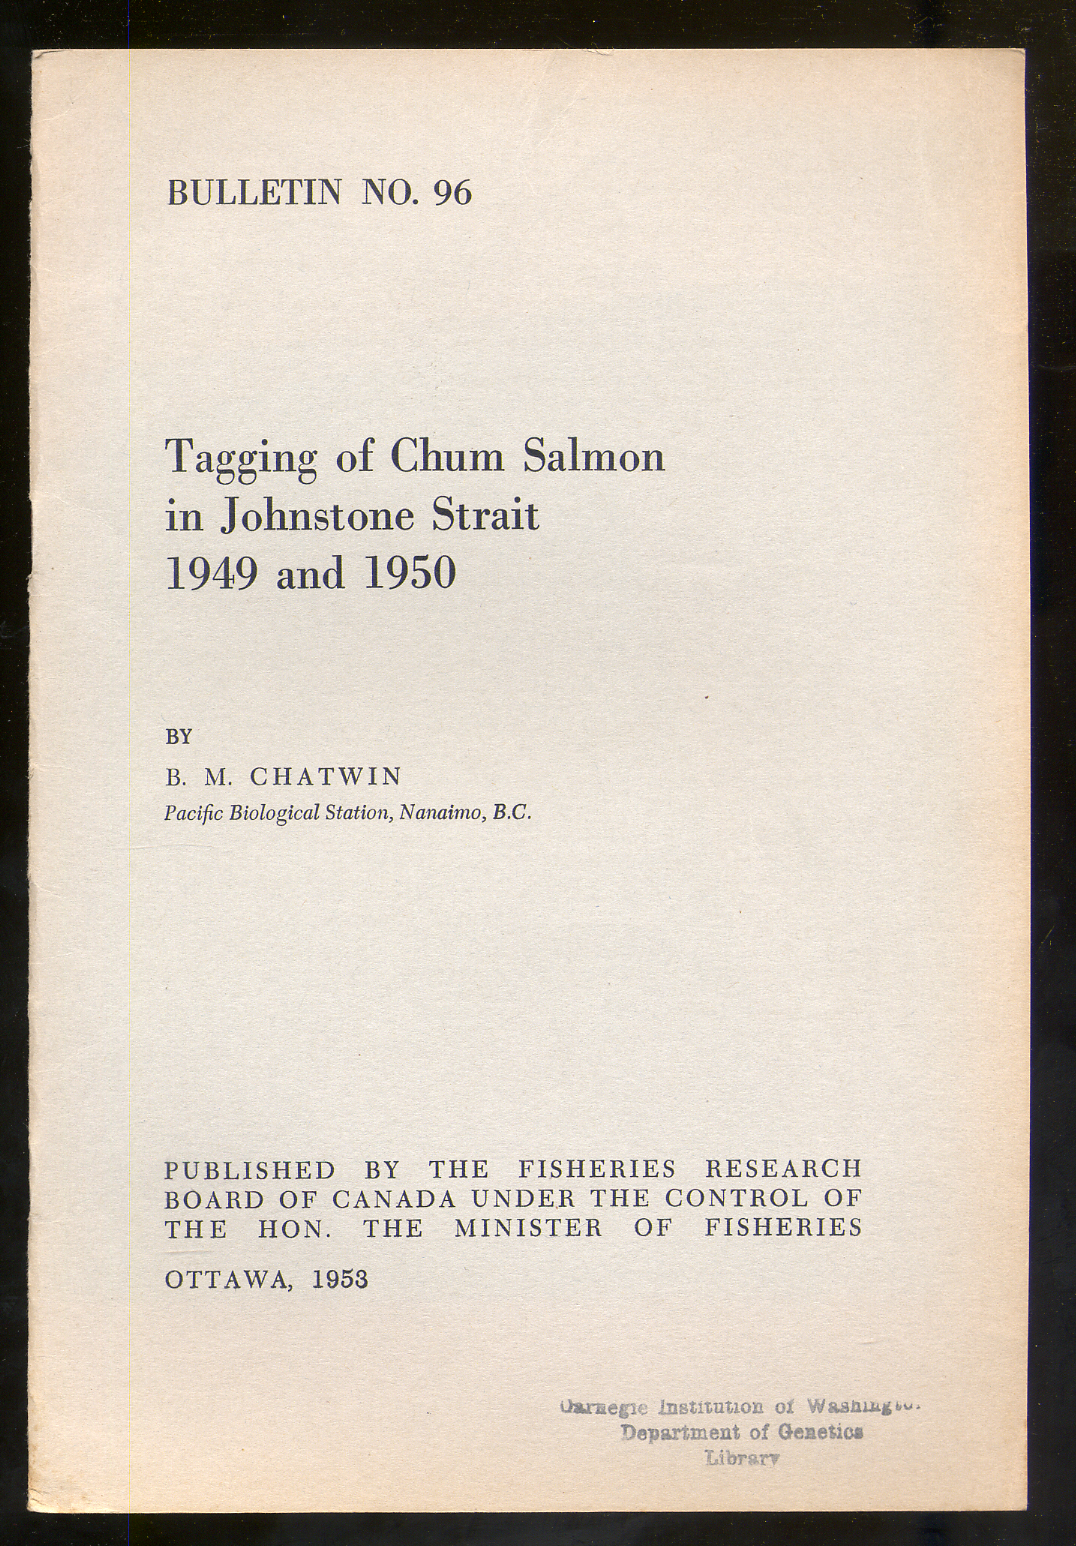 Tagging of Chum Salmon in Johnstone Strait 1949 and 1950 CHATWIN, B.M. Near Fine First edition. Bulletin 96. Near fine with two ink stamps on the front cover, a little fading along the edges, in stapled wrappers. 33 pages.